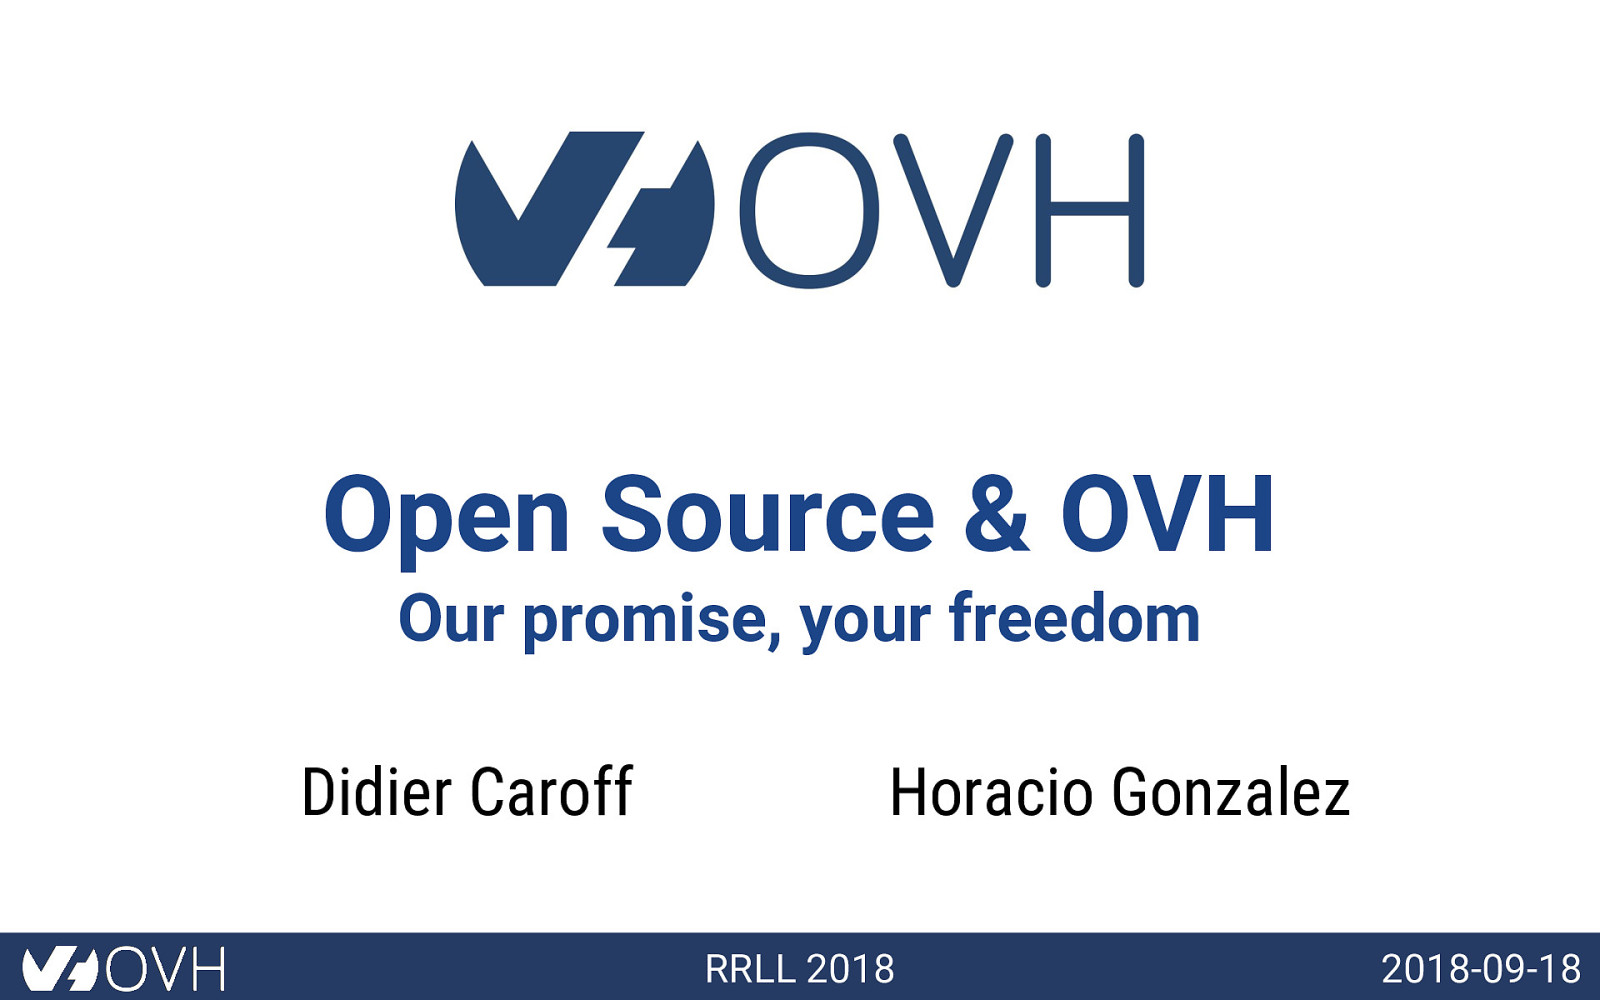 Open Source & OVH